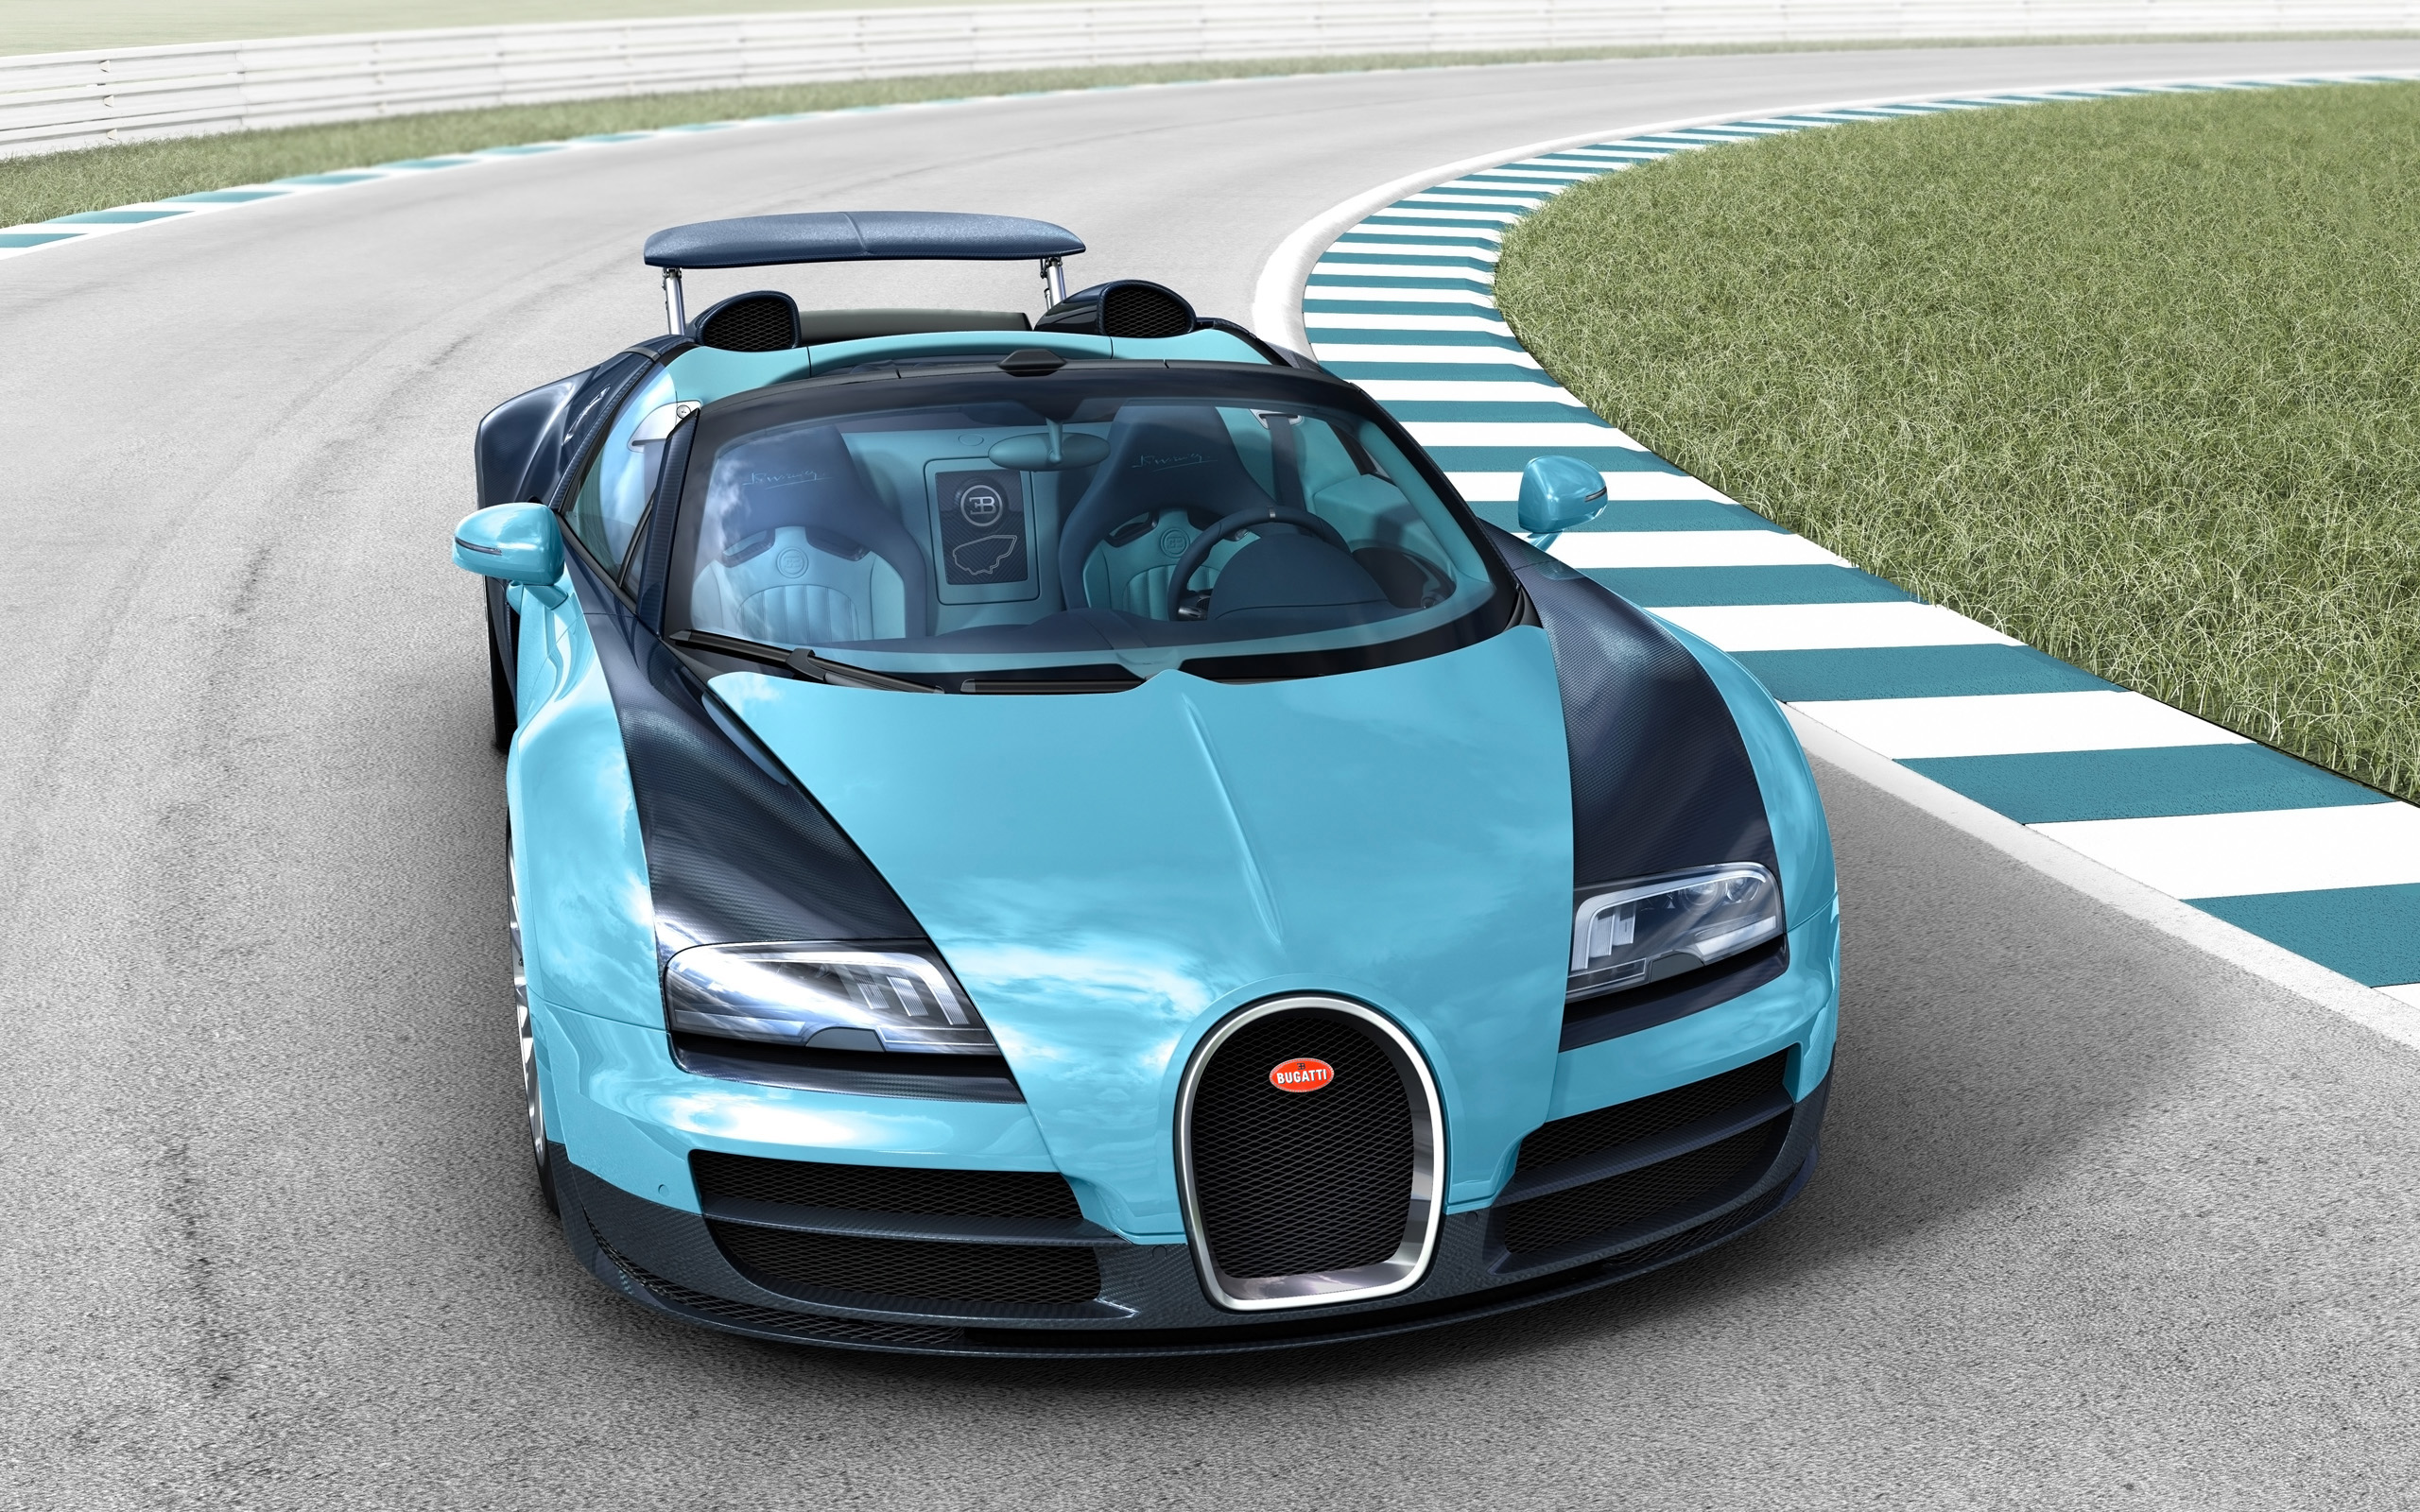 2013 bugatti veyron grand sport vitesse legend jean pierre wimille wallpaper hd car wallpapers. Black Bedroom Furniture Sets. Home Design Ideas